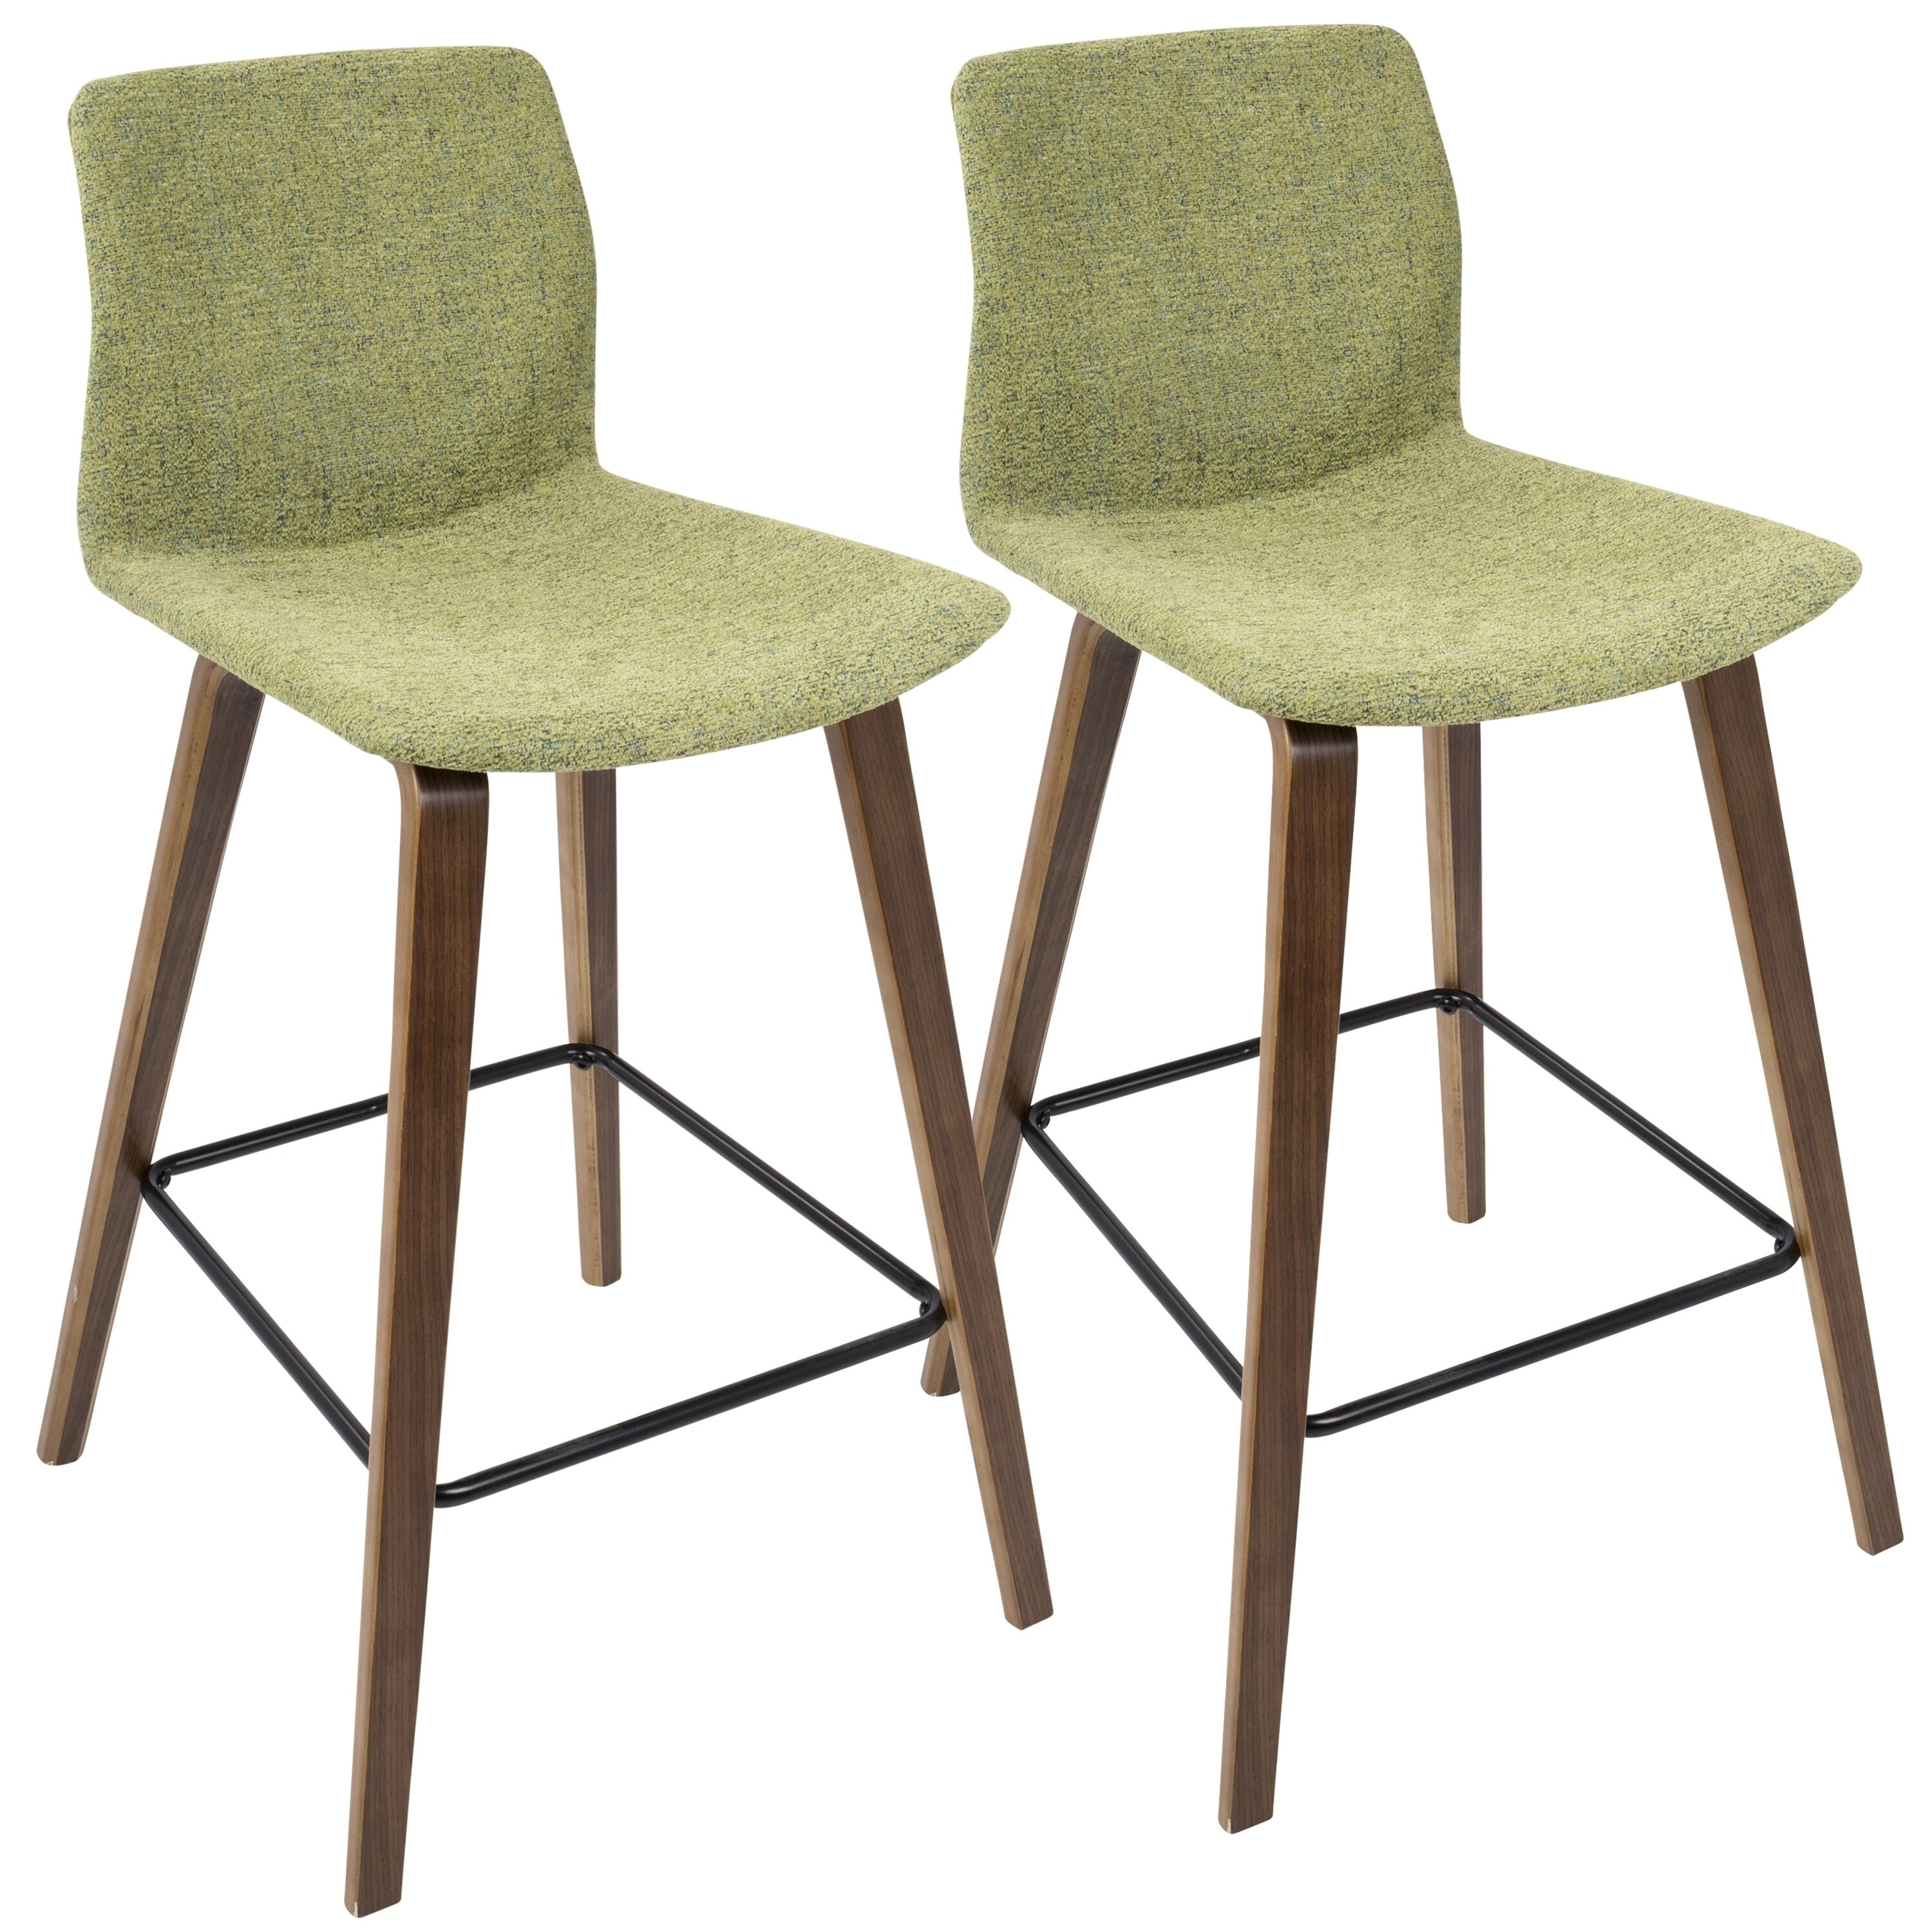 Admirable Carson Carrington Domesta Mid Century Modern Counter Stool Set Of 2 N A Squirreltailoven Fun Painted Chair Ideas Images Squirreltailovenorg